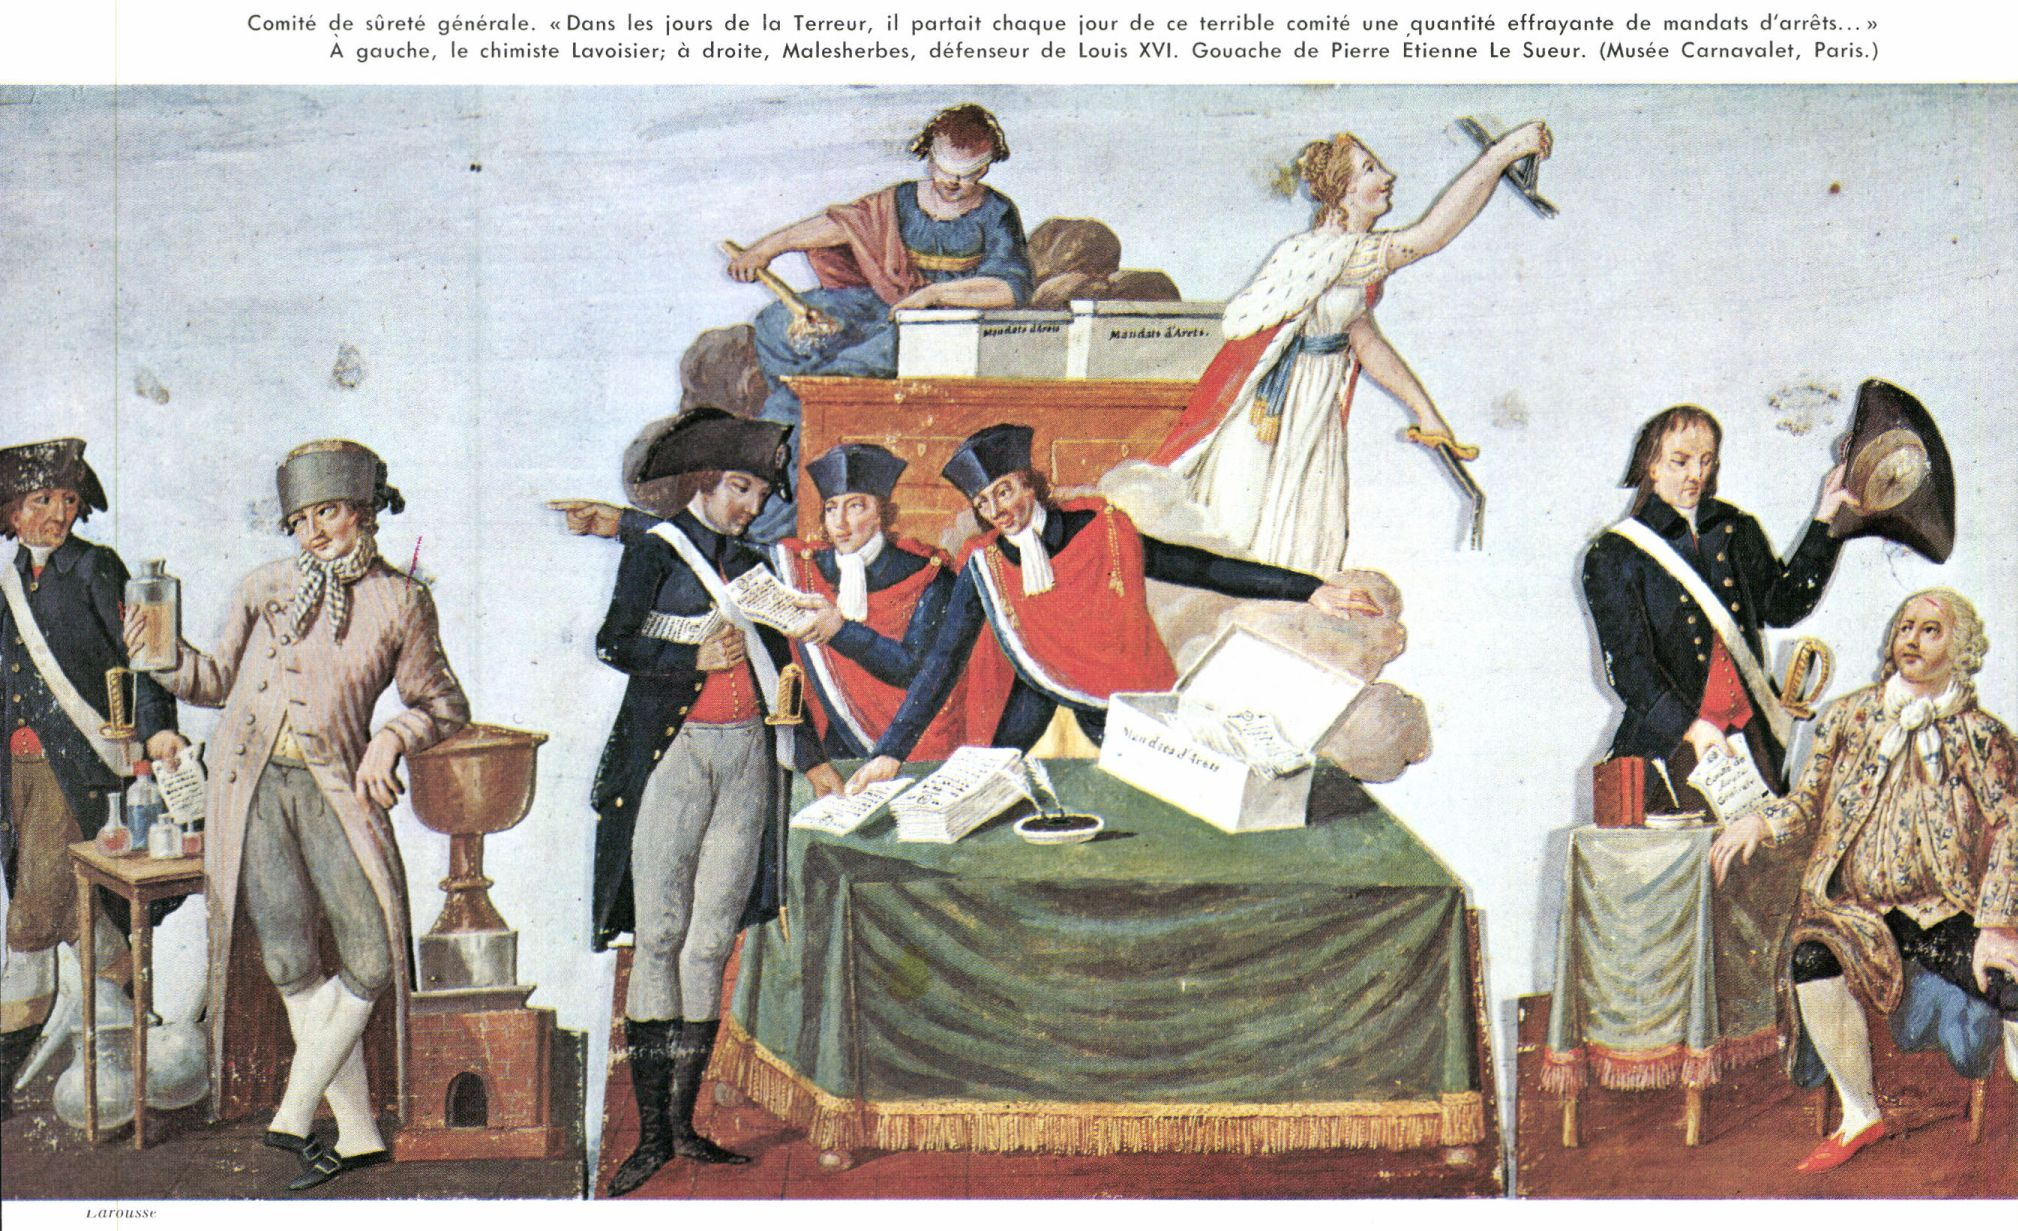 a critique of the sans culottes by albert soboul Soboul's book has always been thought as the main authority on the sections in paris, but in the early 1980's, a critique was written on the sans-culottes and many things were found to be wrong with the book.